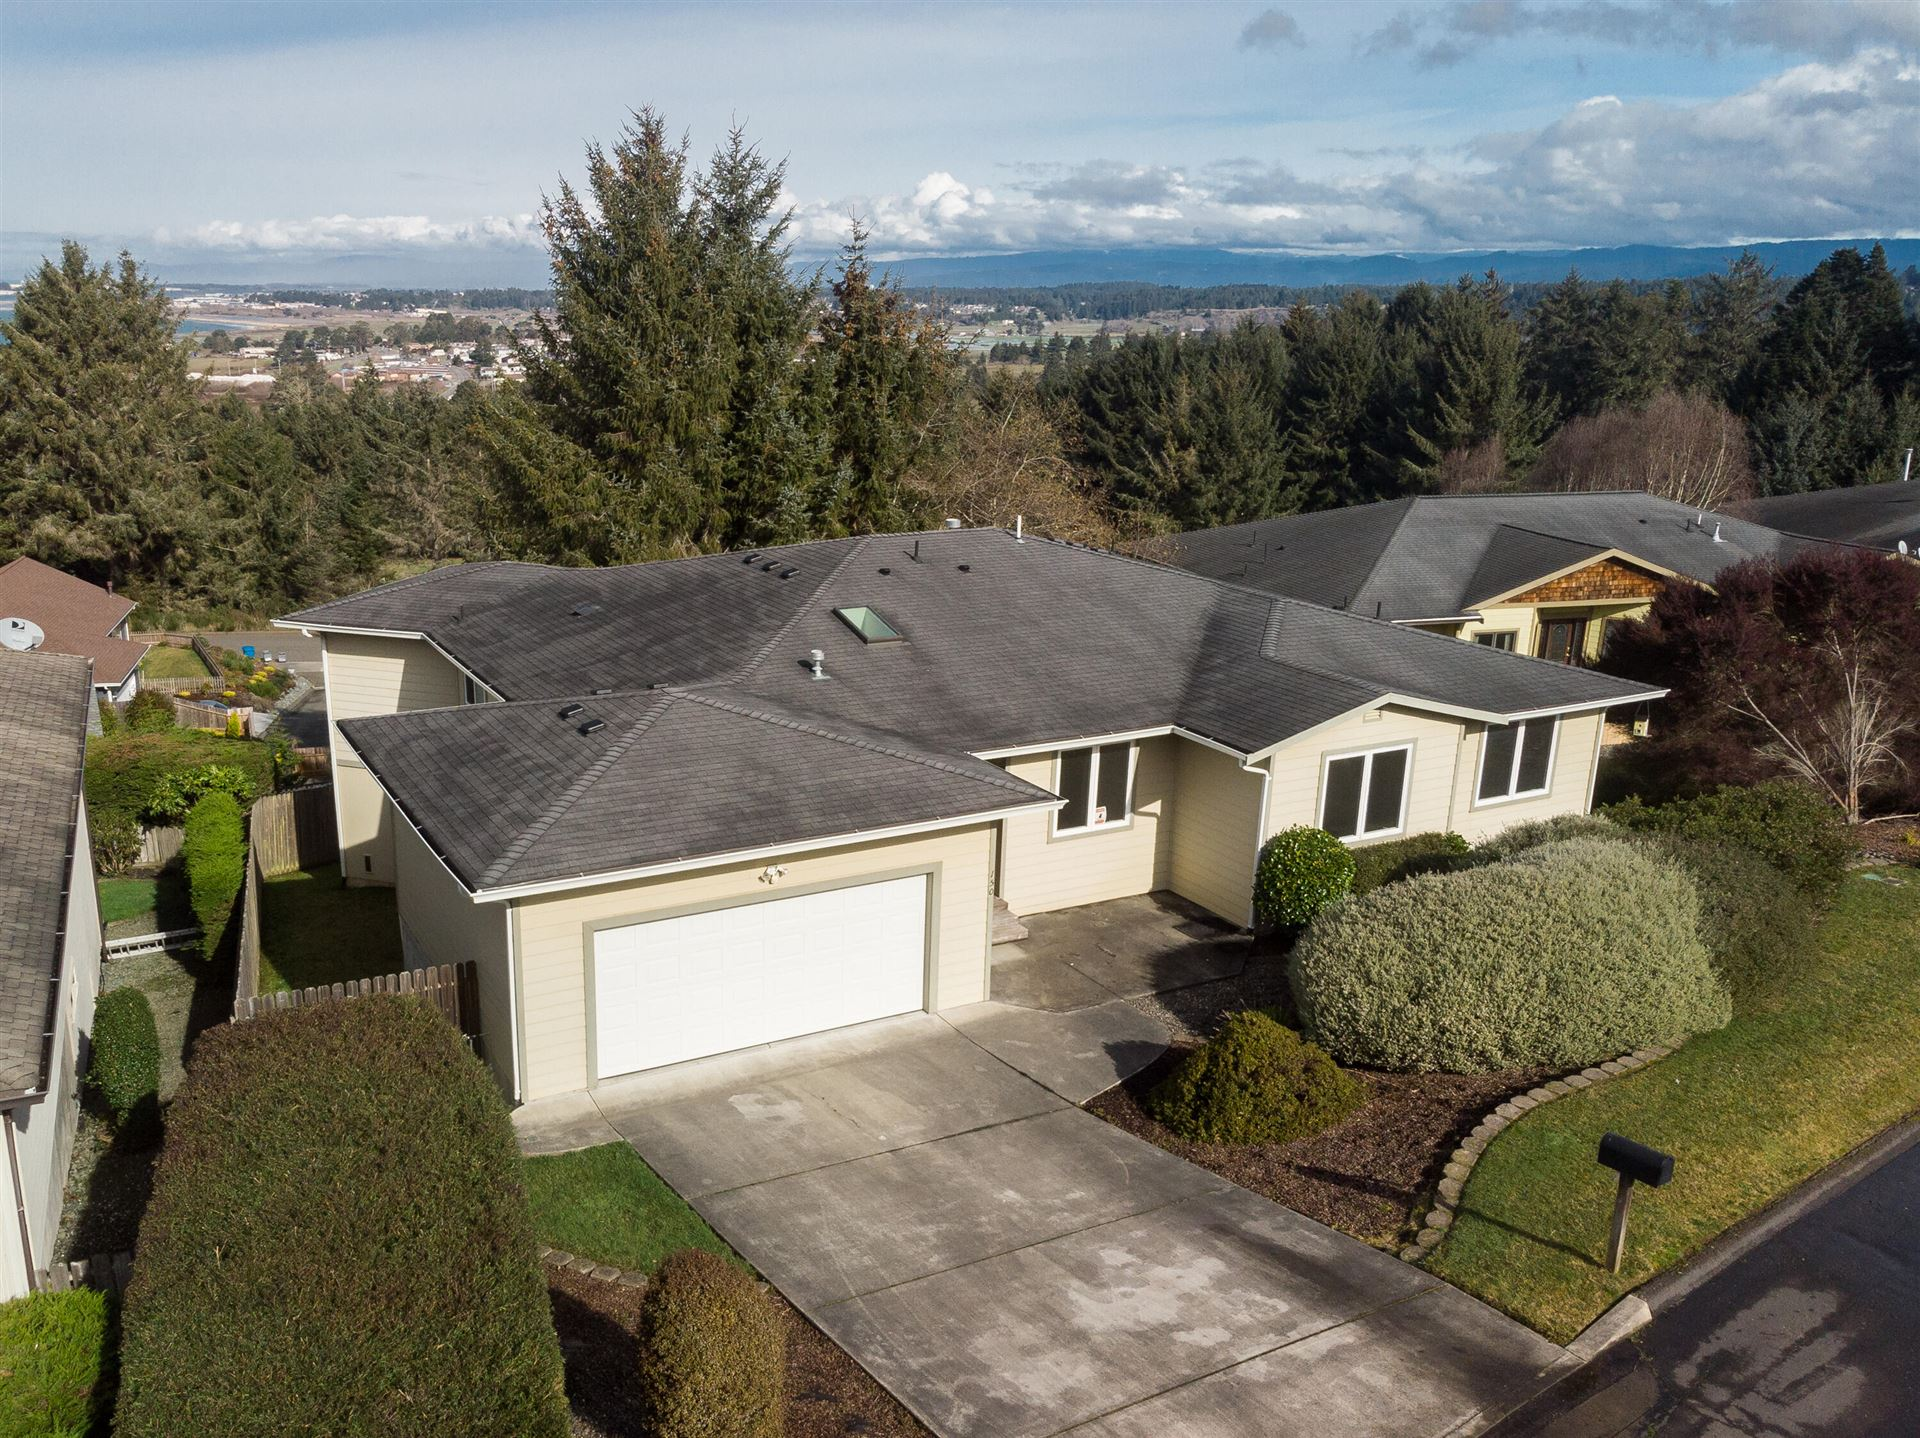 150 Barscape Lane, Humboldt Hill, CA 95503 - MLS#: 258428